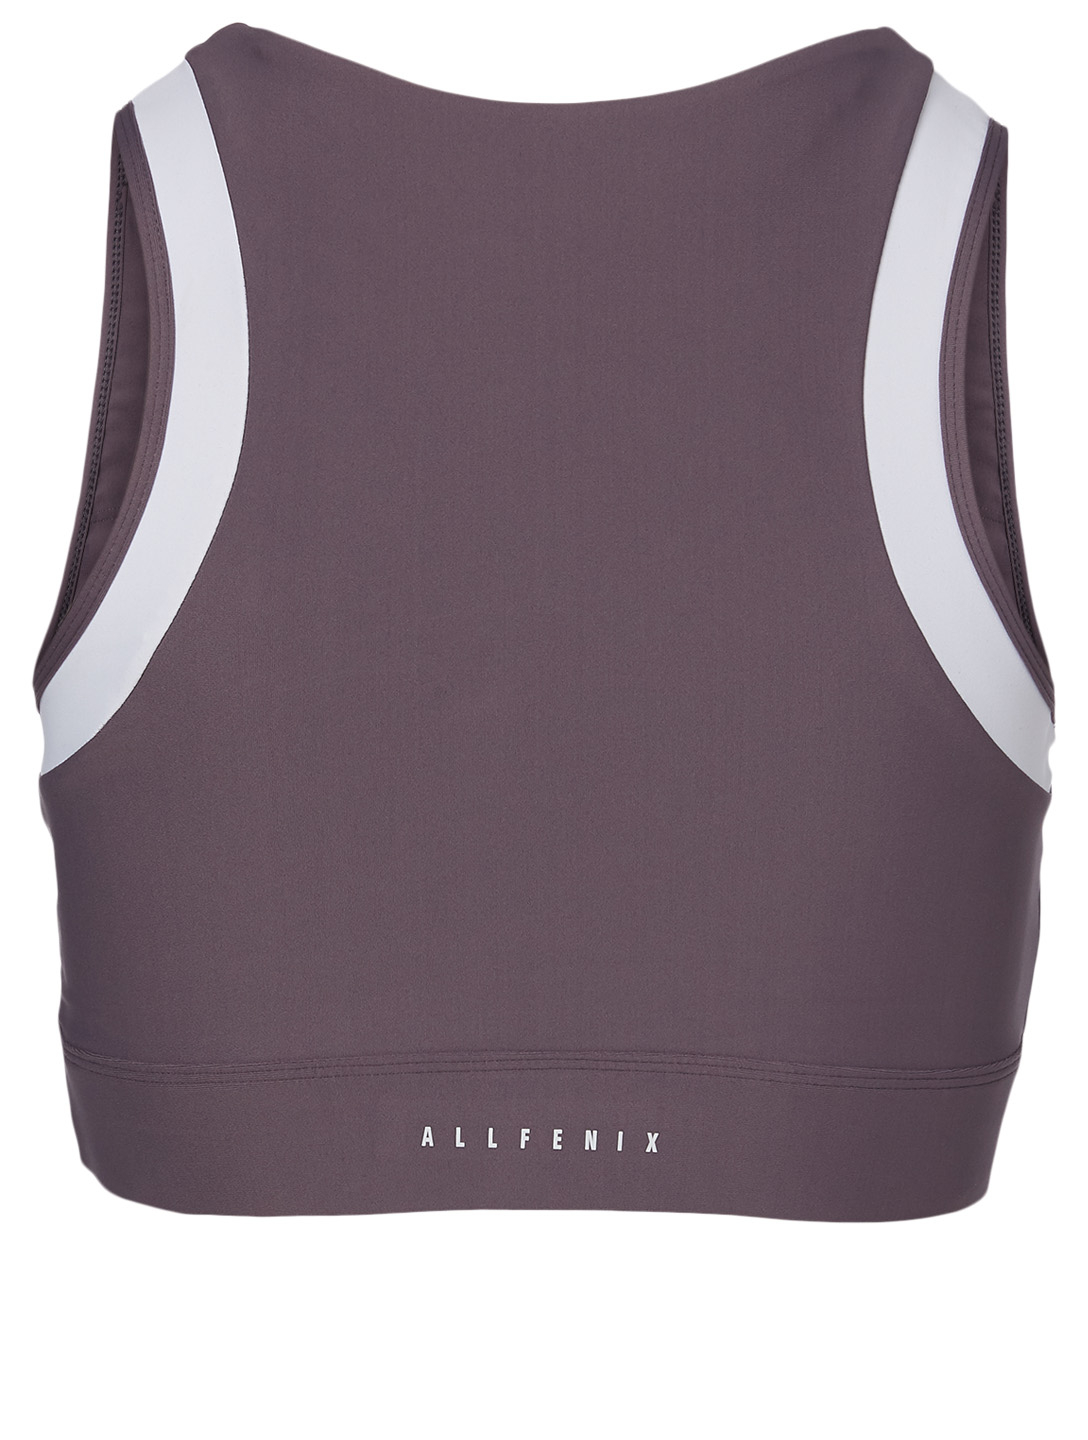 ALL FENIX Cora Sports Bra Women's Purple